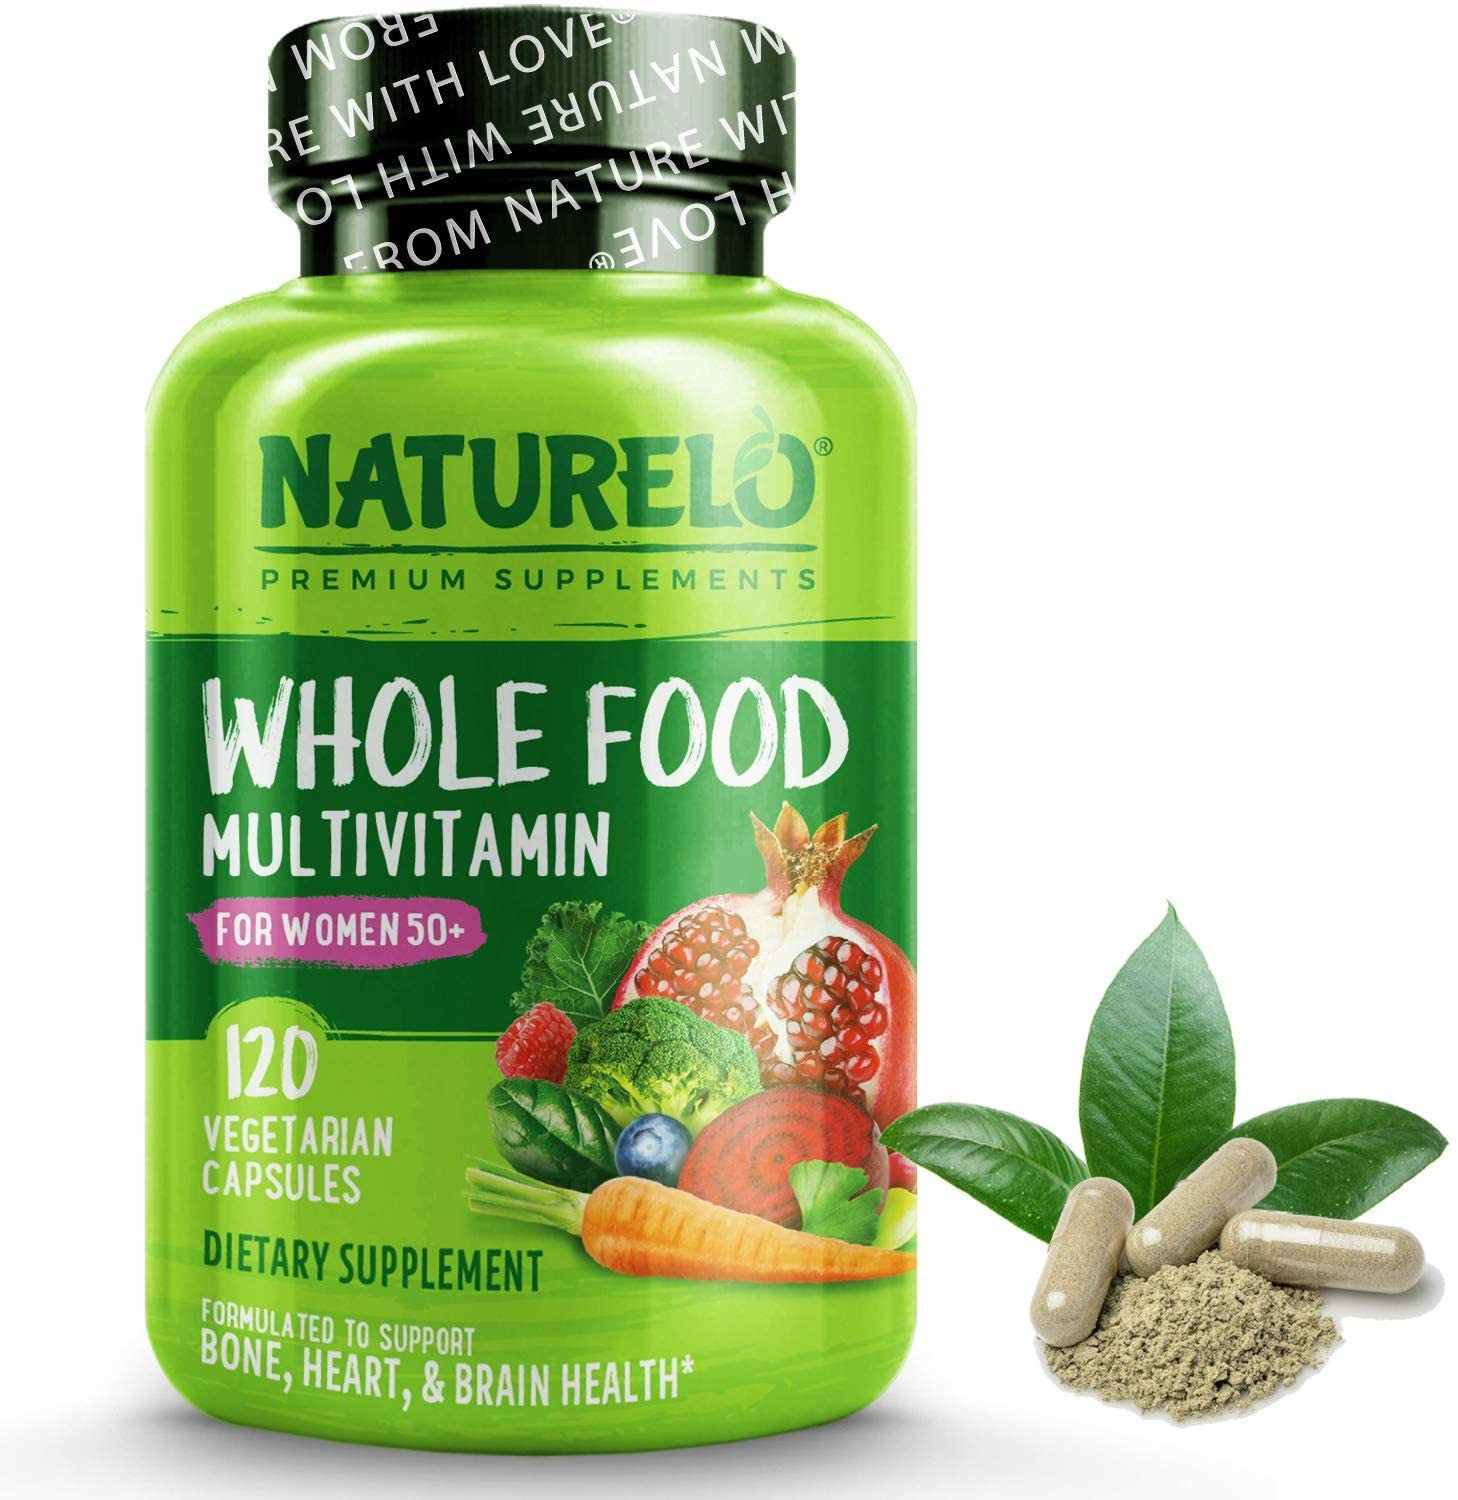 NATURELO Whole Food Multivitamin for Women 50+